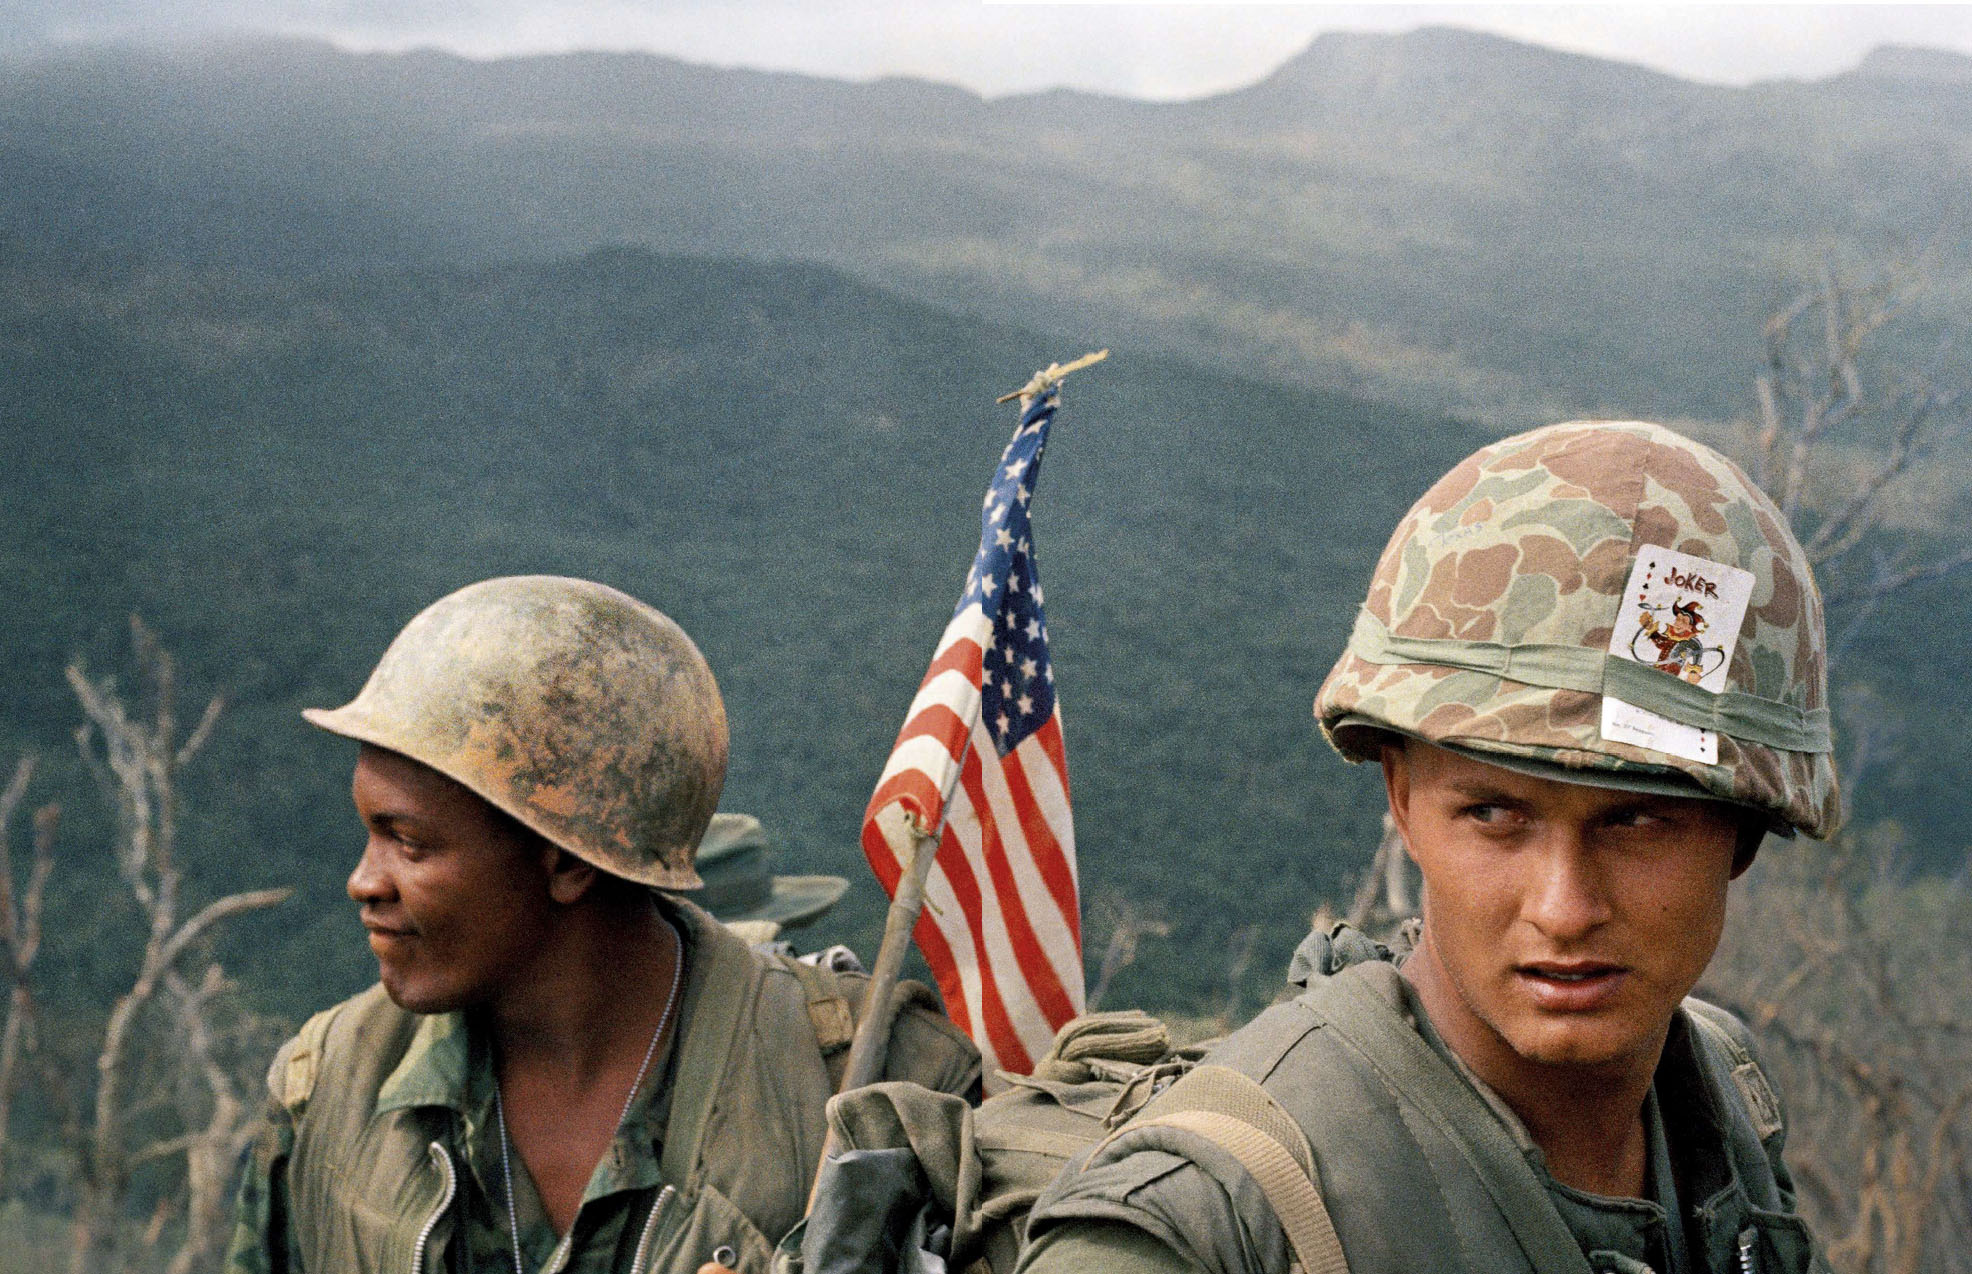 an argument in favor of american military intervention in vietnam The vietnam conflict continues to be the touchstone for both the military and policy makers committed to avoiding future foreign military quagmires.